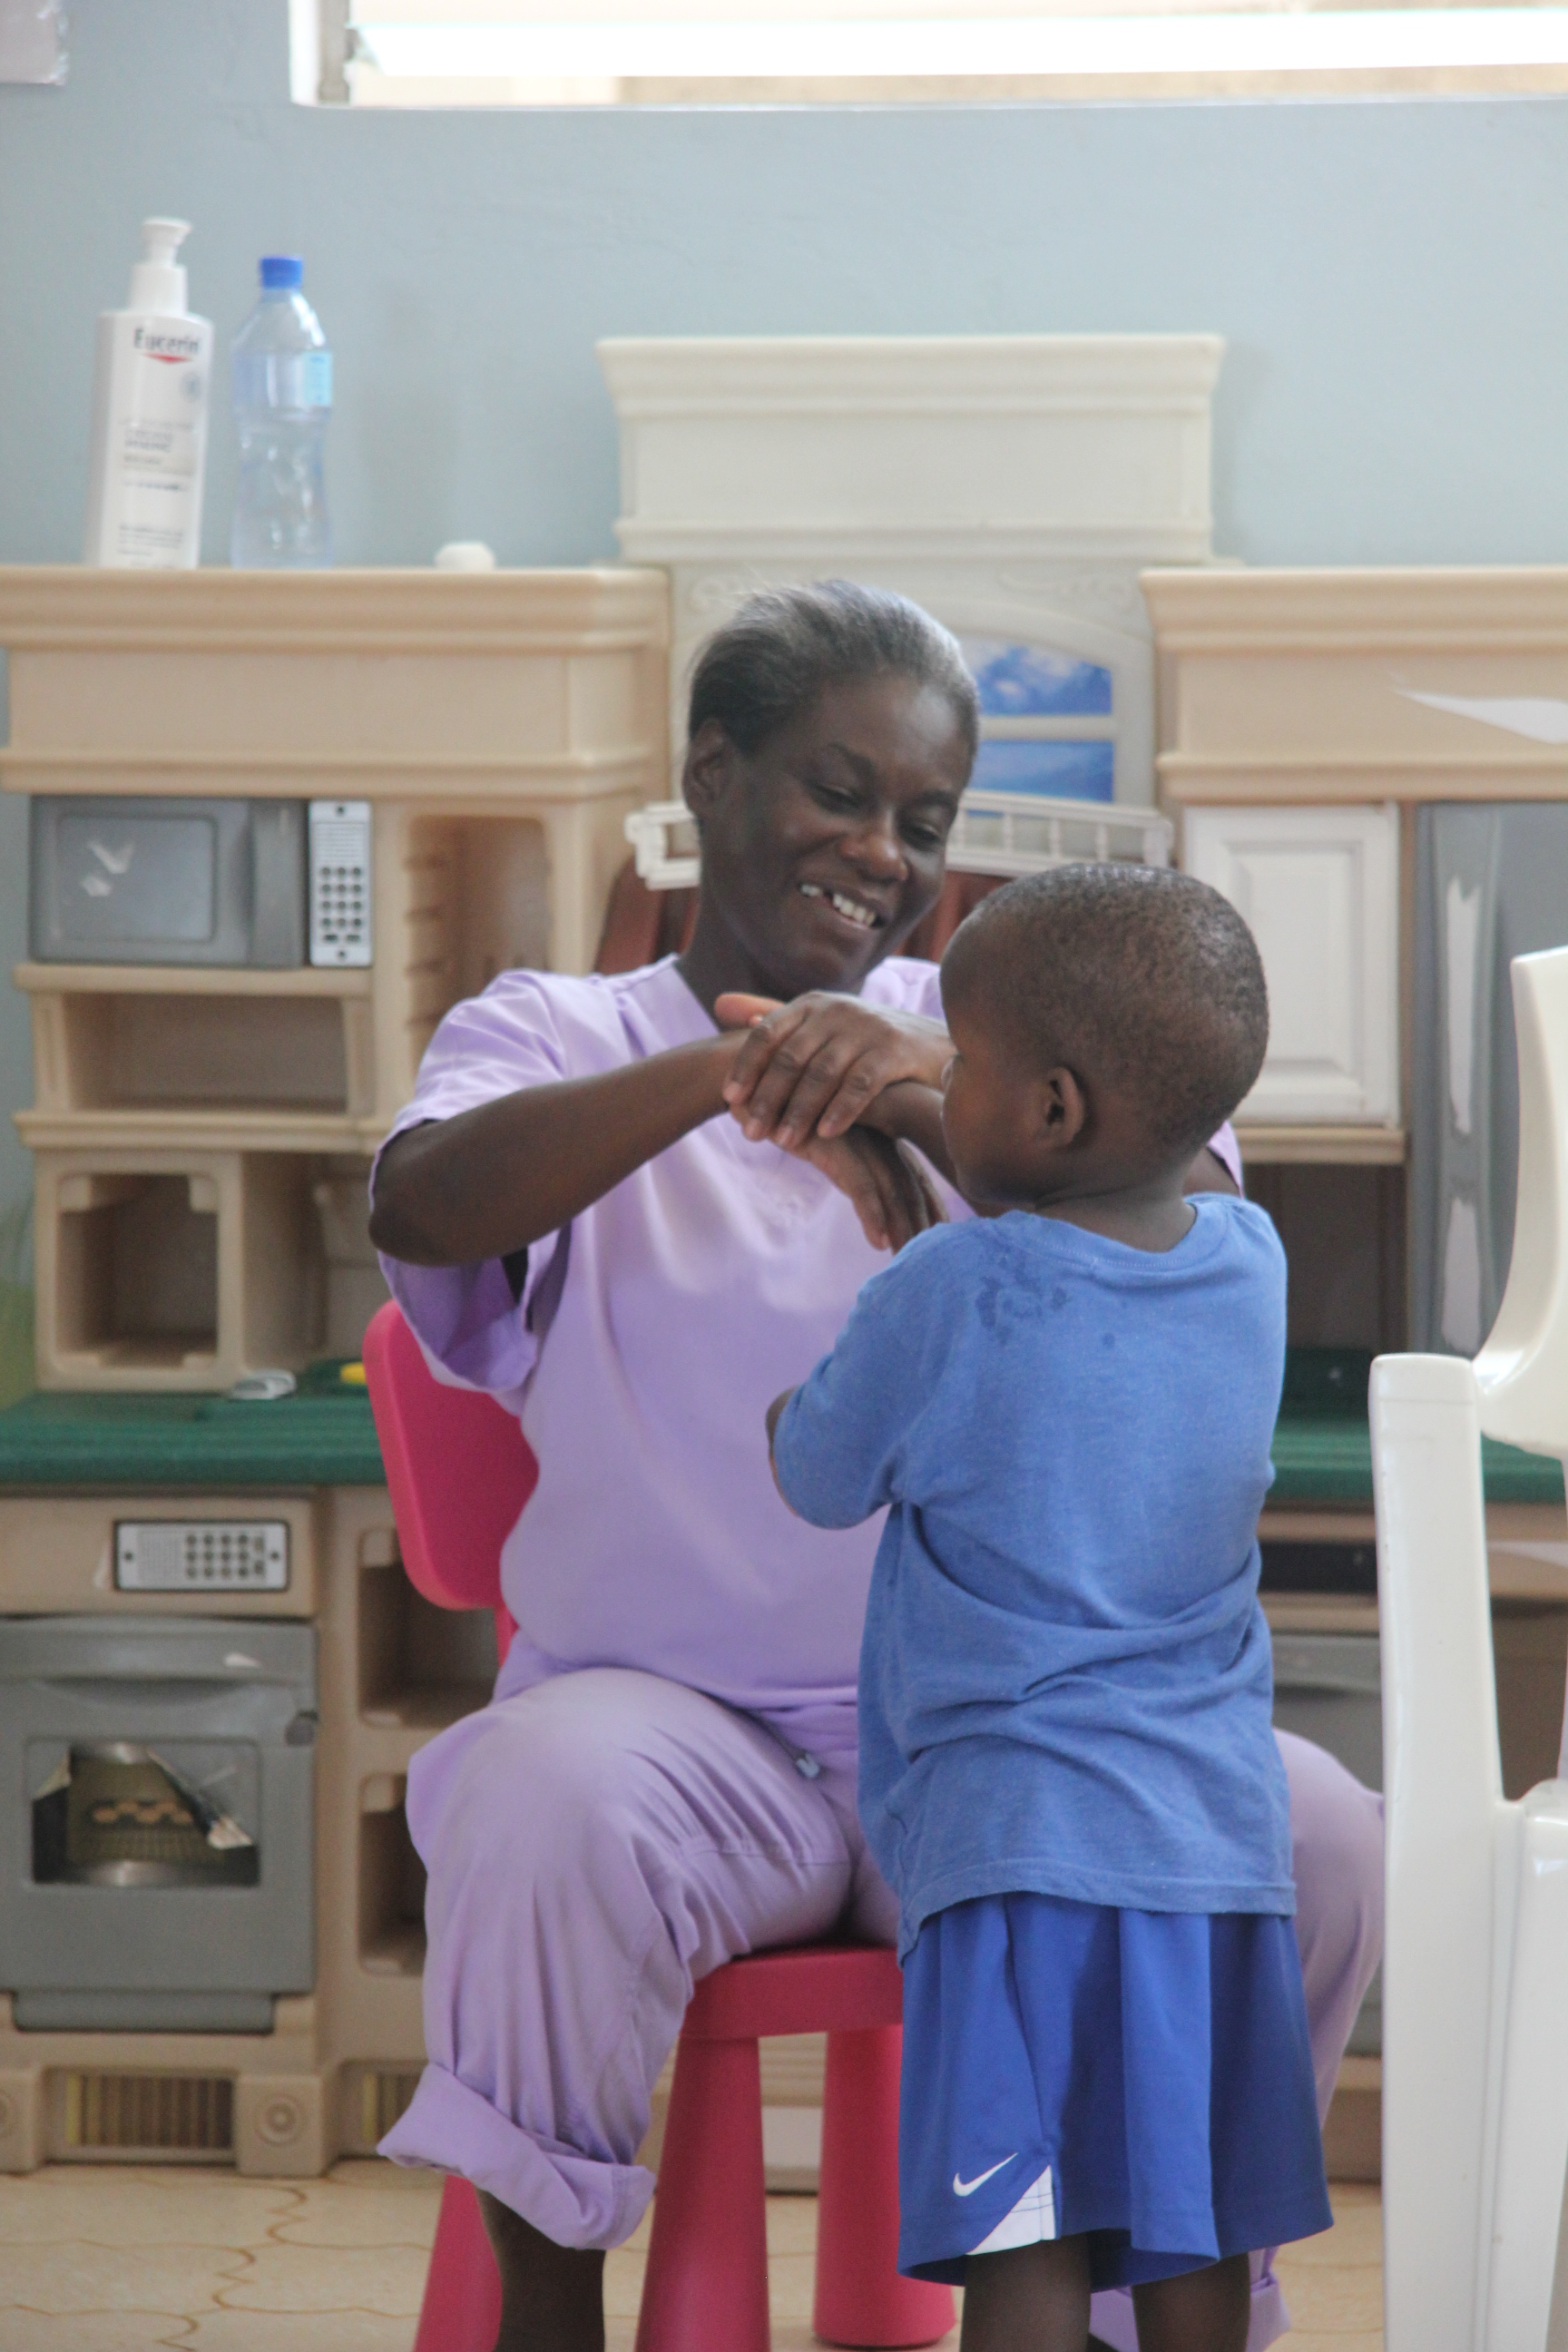 8-25-15 Play Therapy 045.JPG